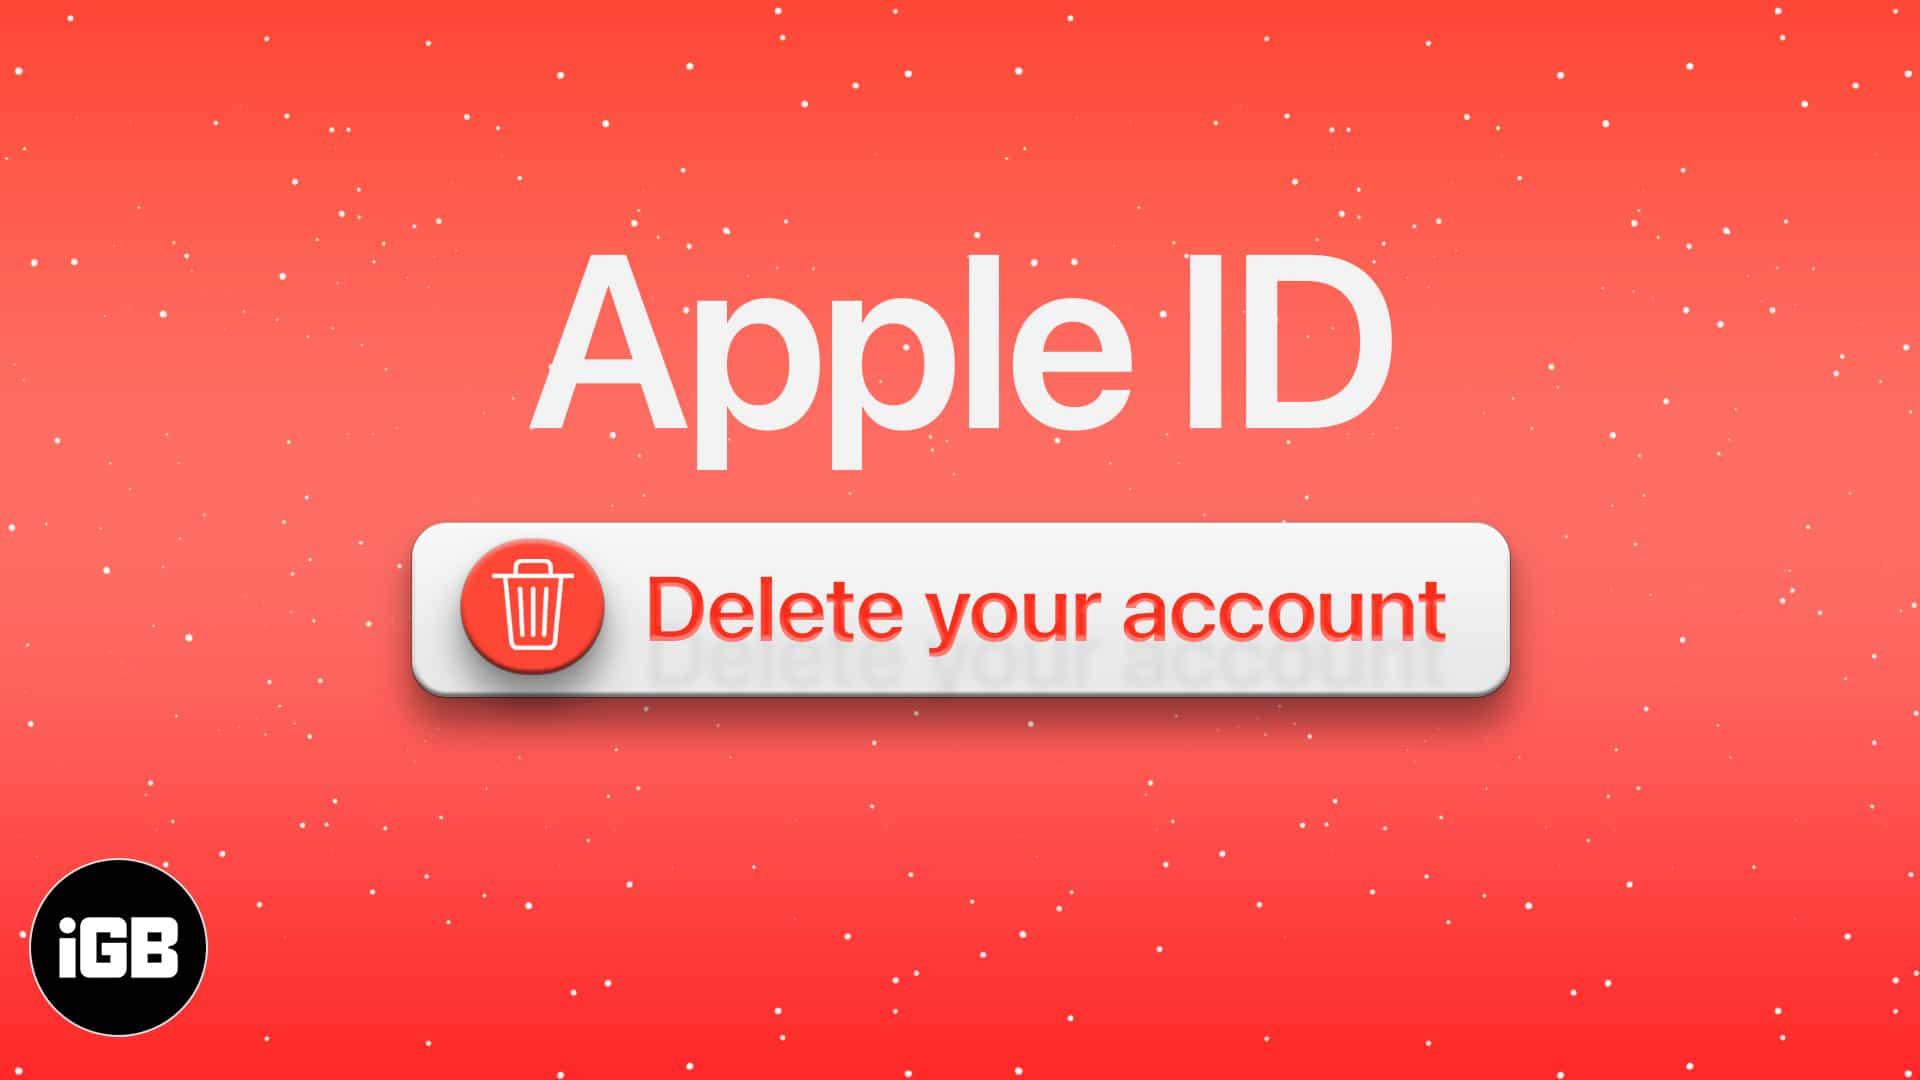 How to delete Apple ID account permanently